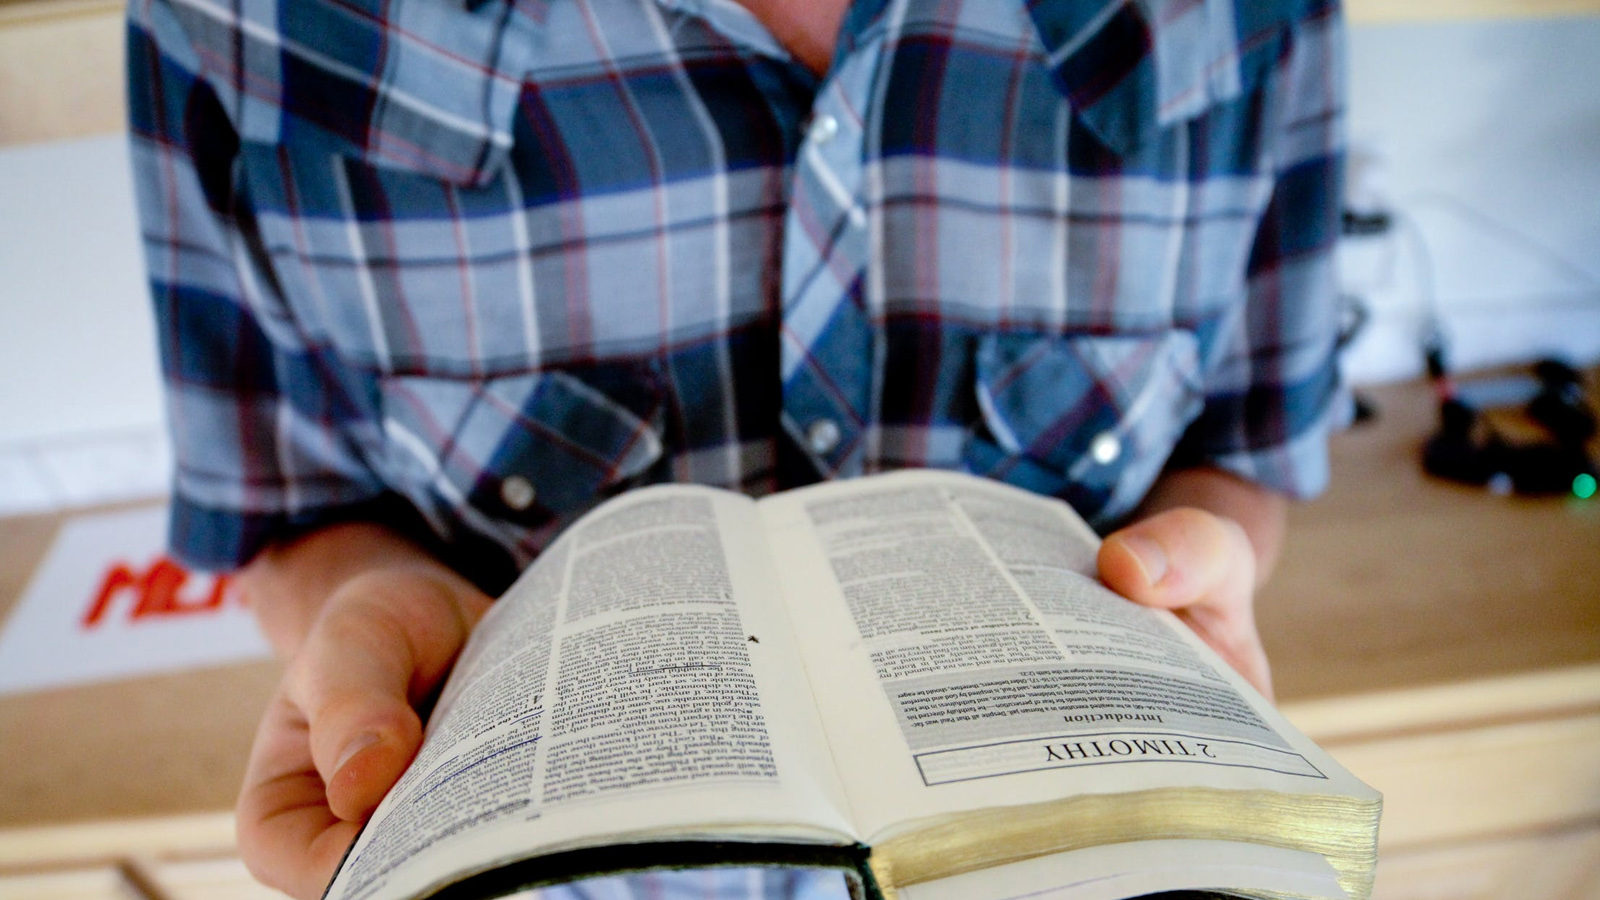 A Brief Overview of the Christian Science Worldview